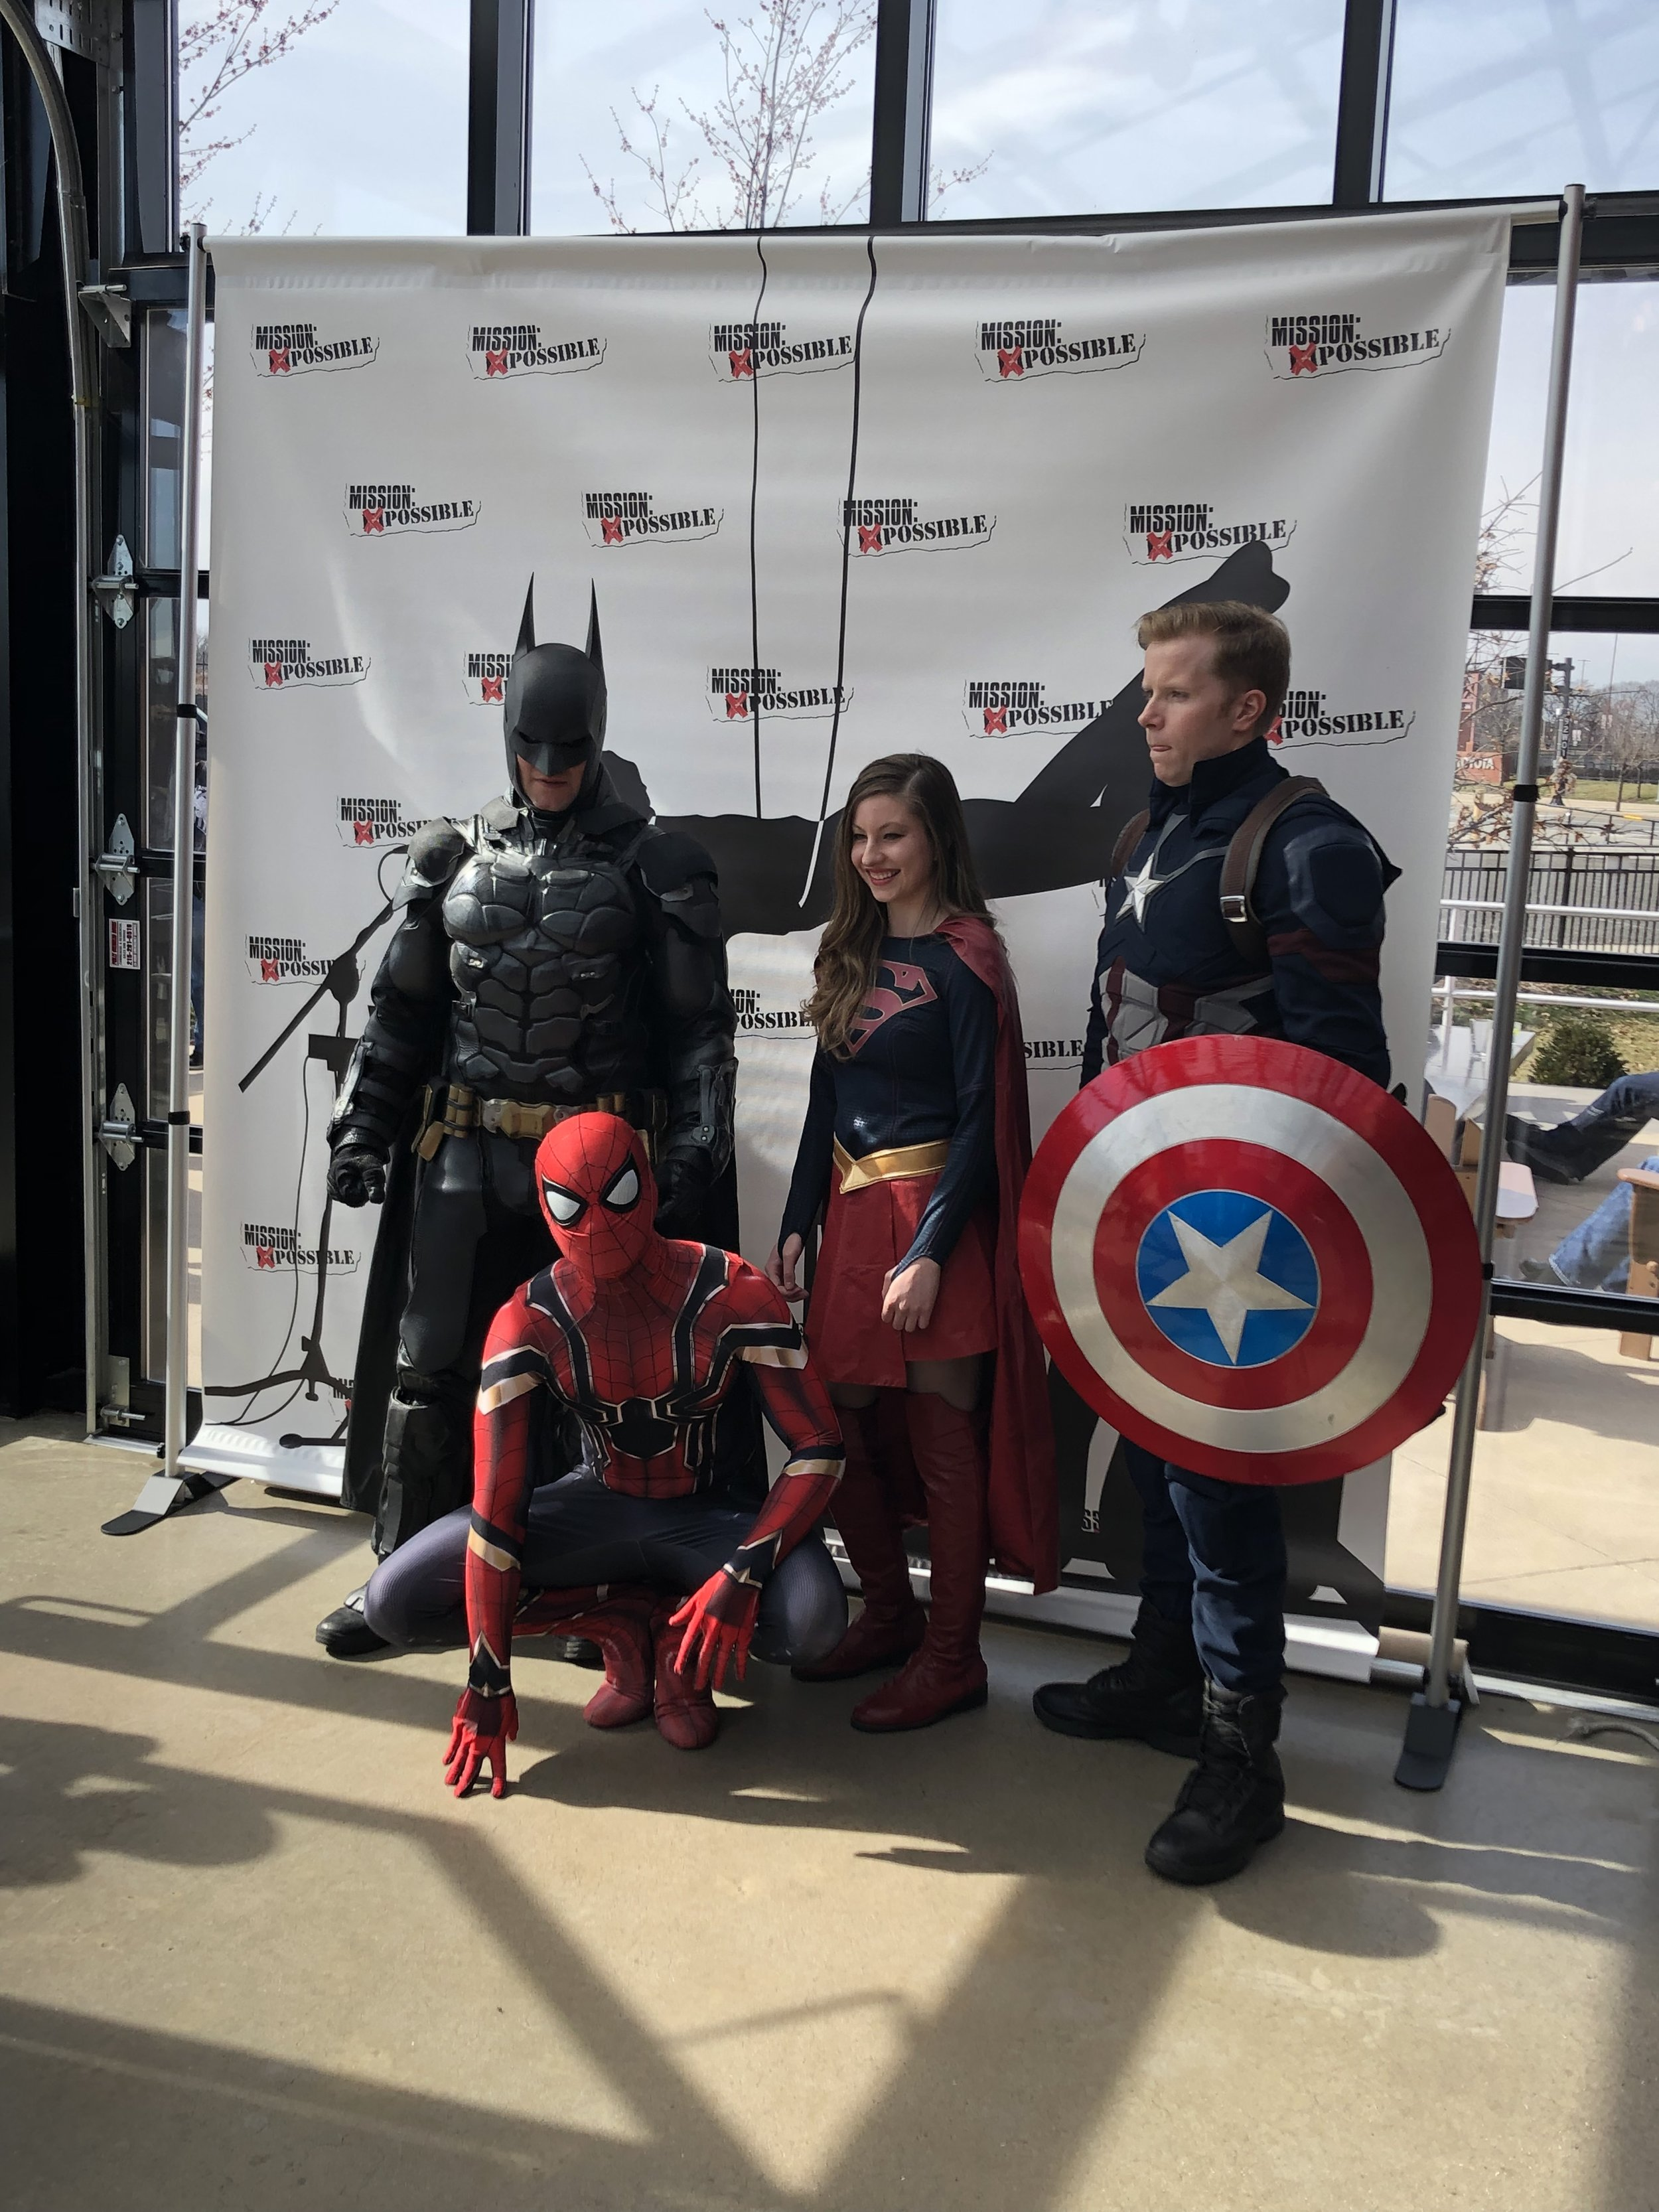 Batman, Spiderman, Wonder Woman, and Captain America stopped by!